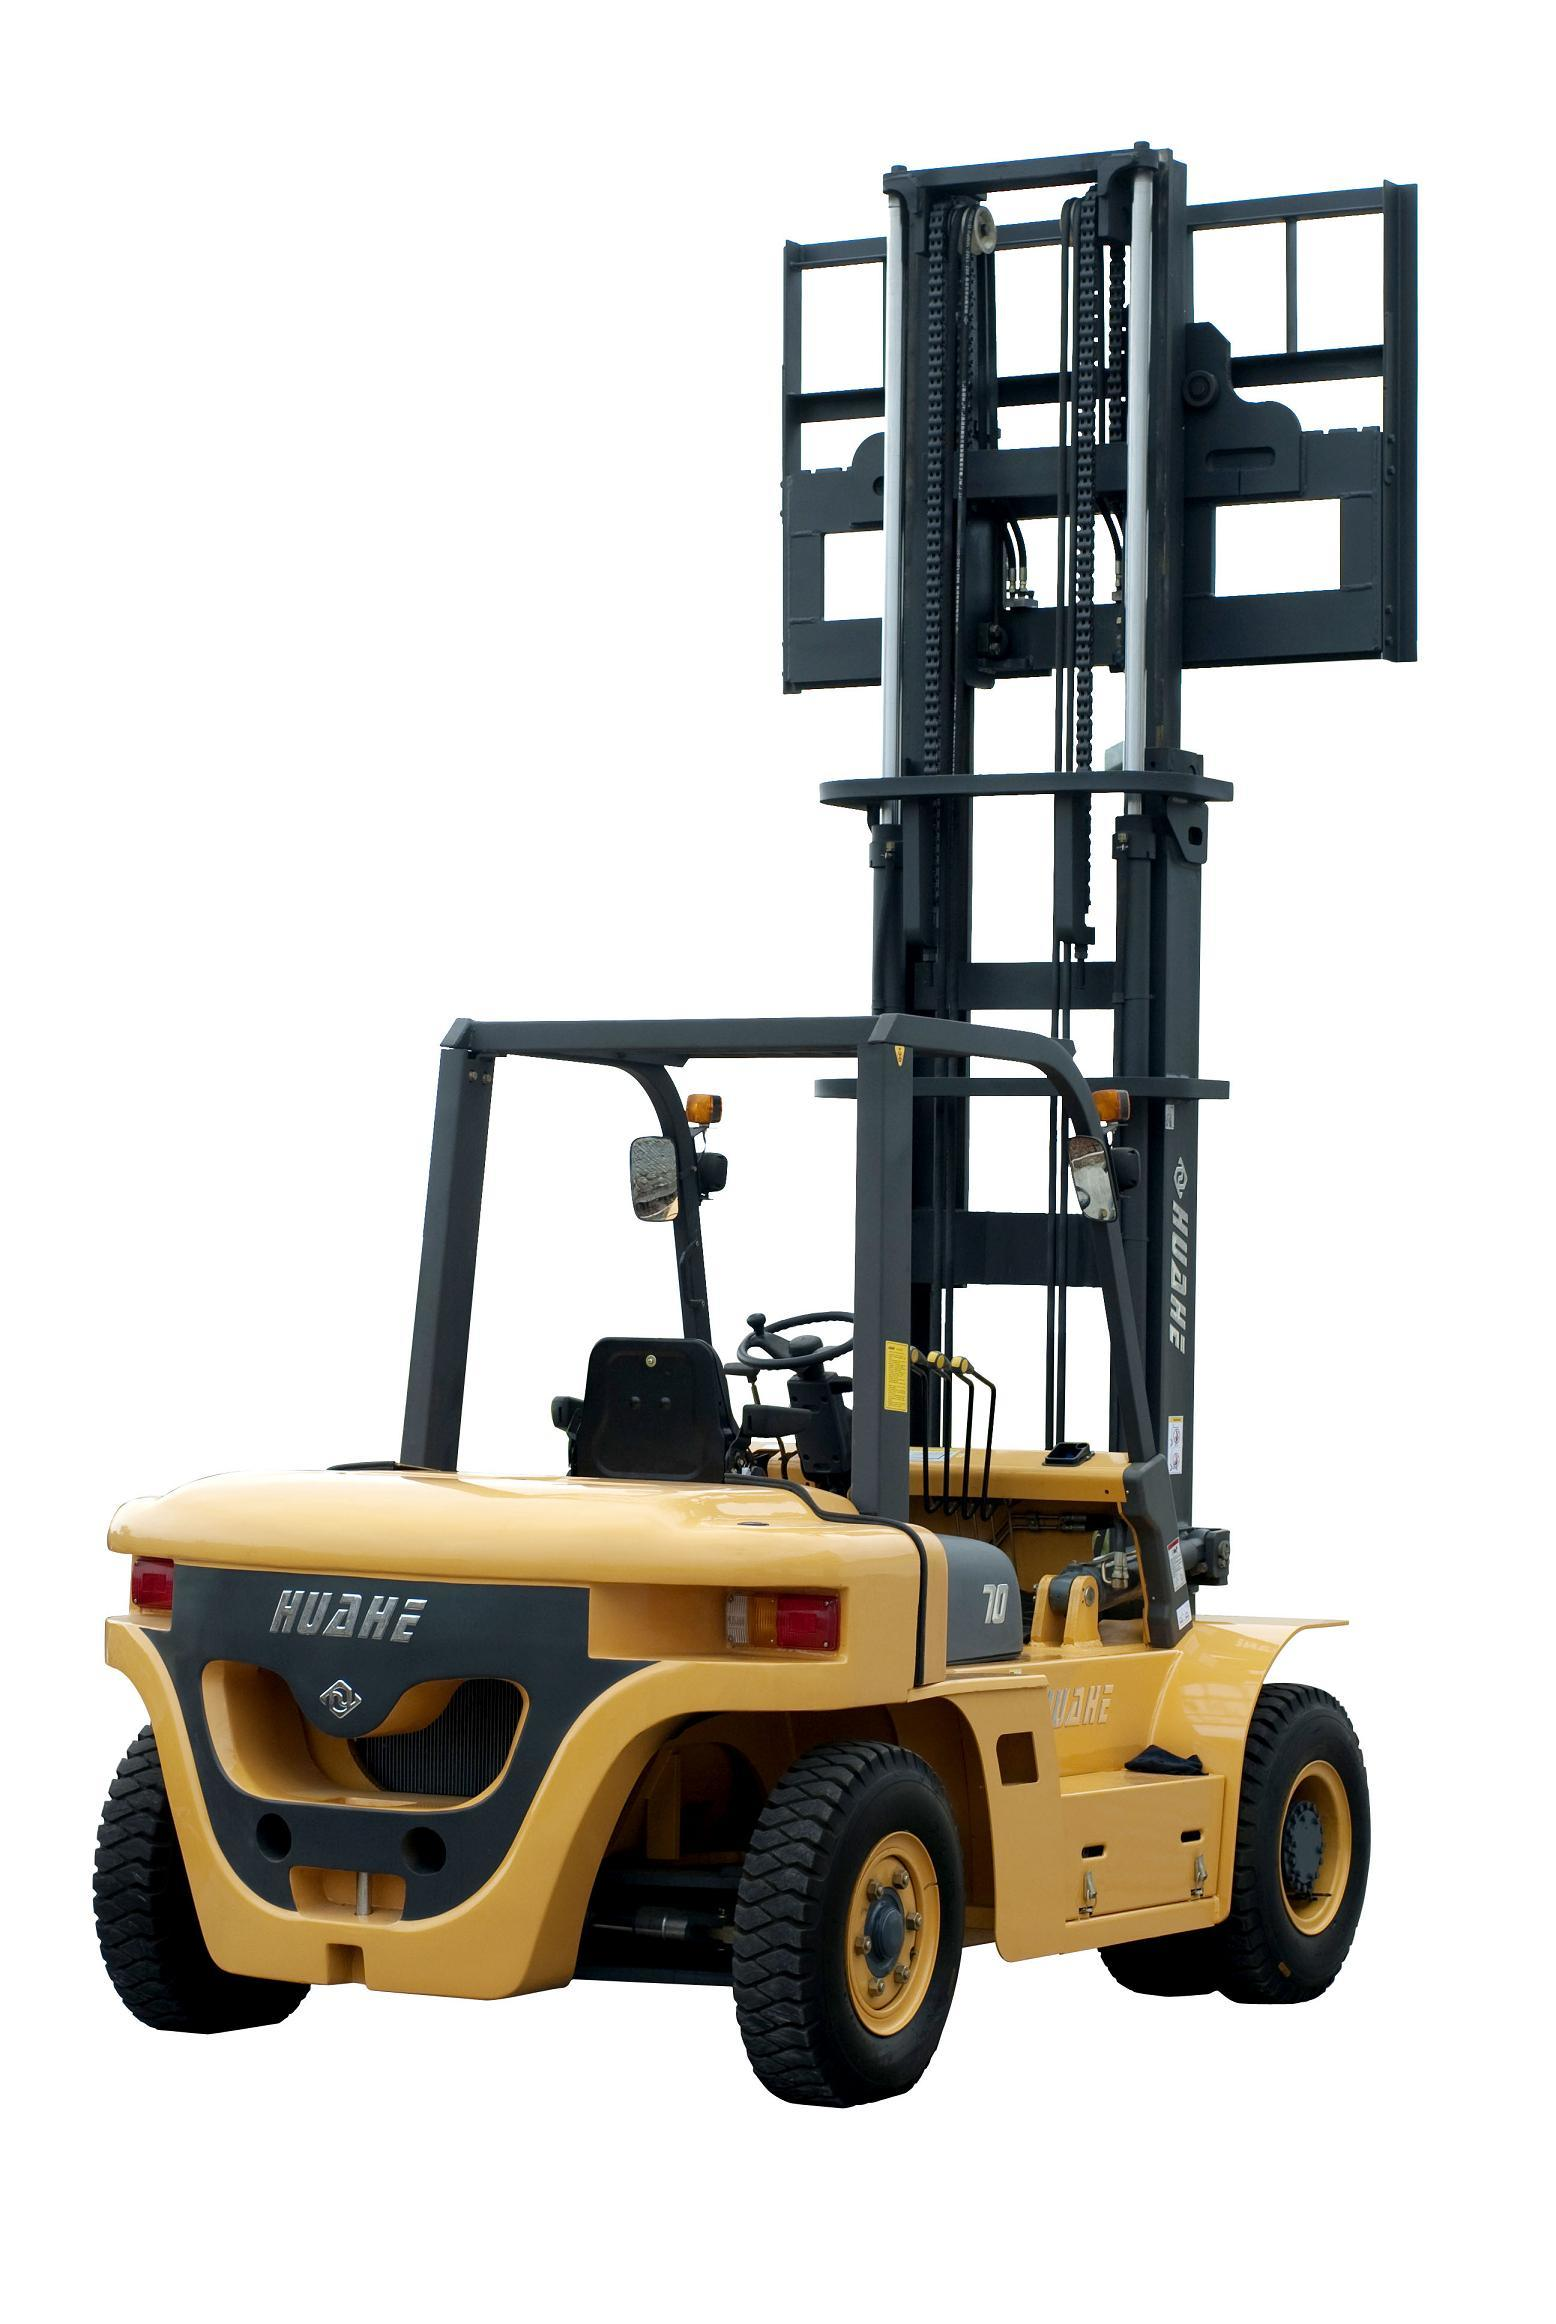 6.0t Diesel Forklift with 6meter Mast Height